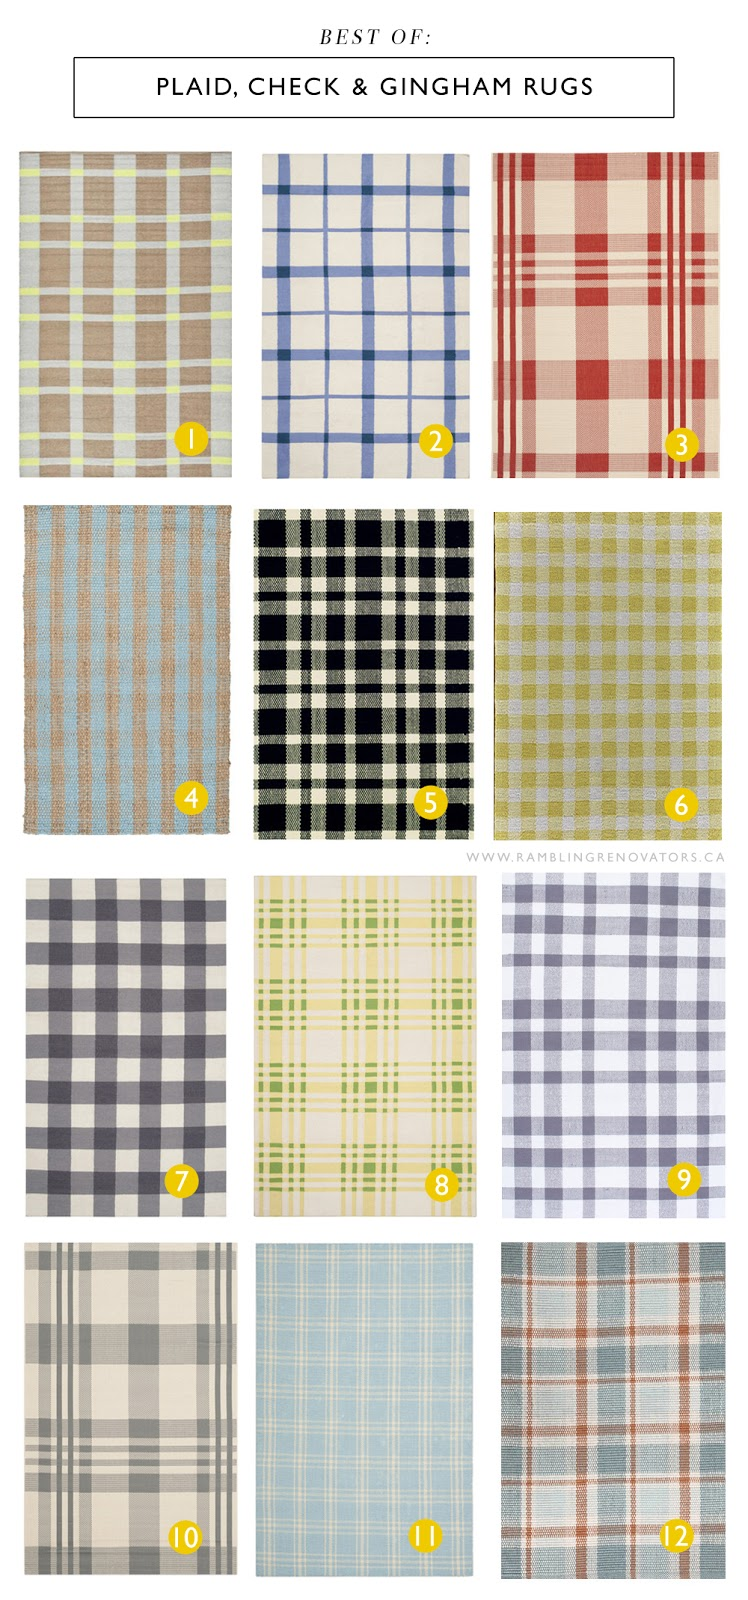 Plaid, check, and gingham rugs | Ramblingrenovators.ca | farmhouse lakehouse cottage rugs